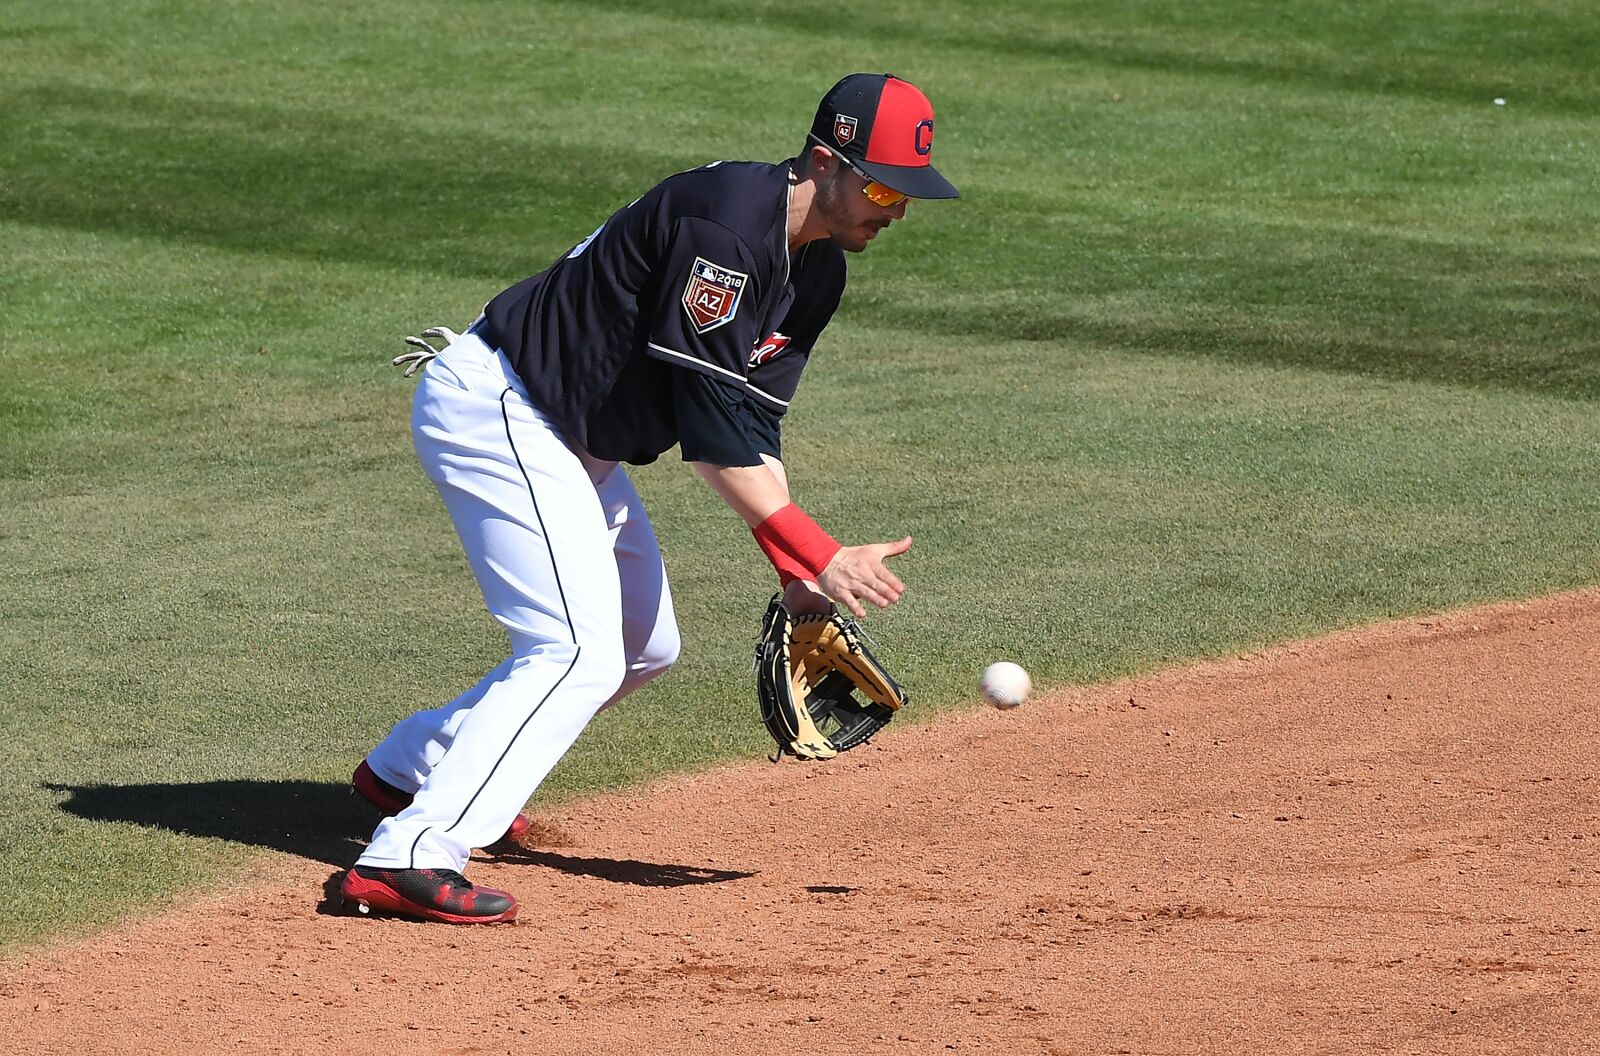 Cleveland Indians: What to make of these Spring Training stats